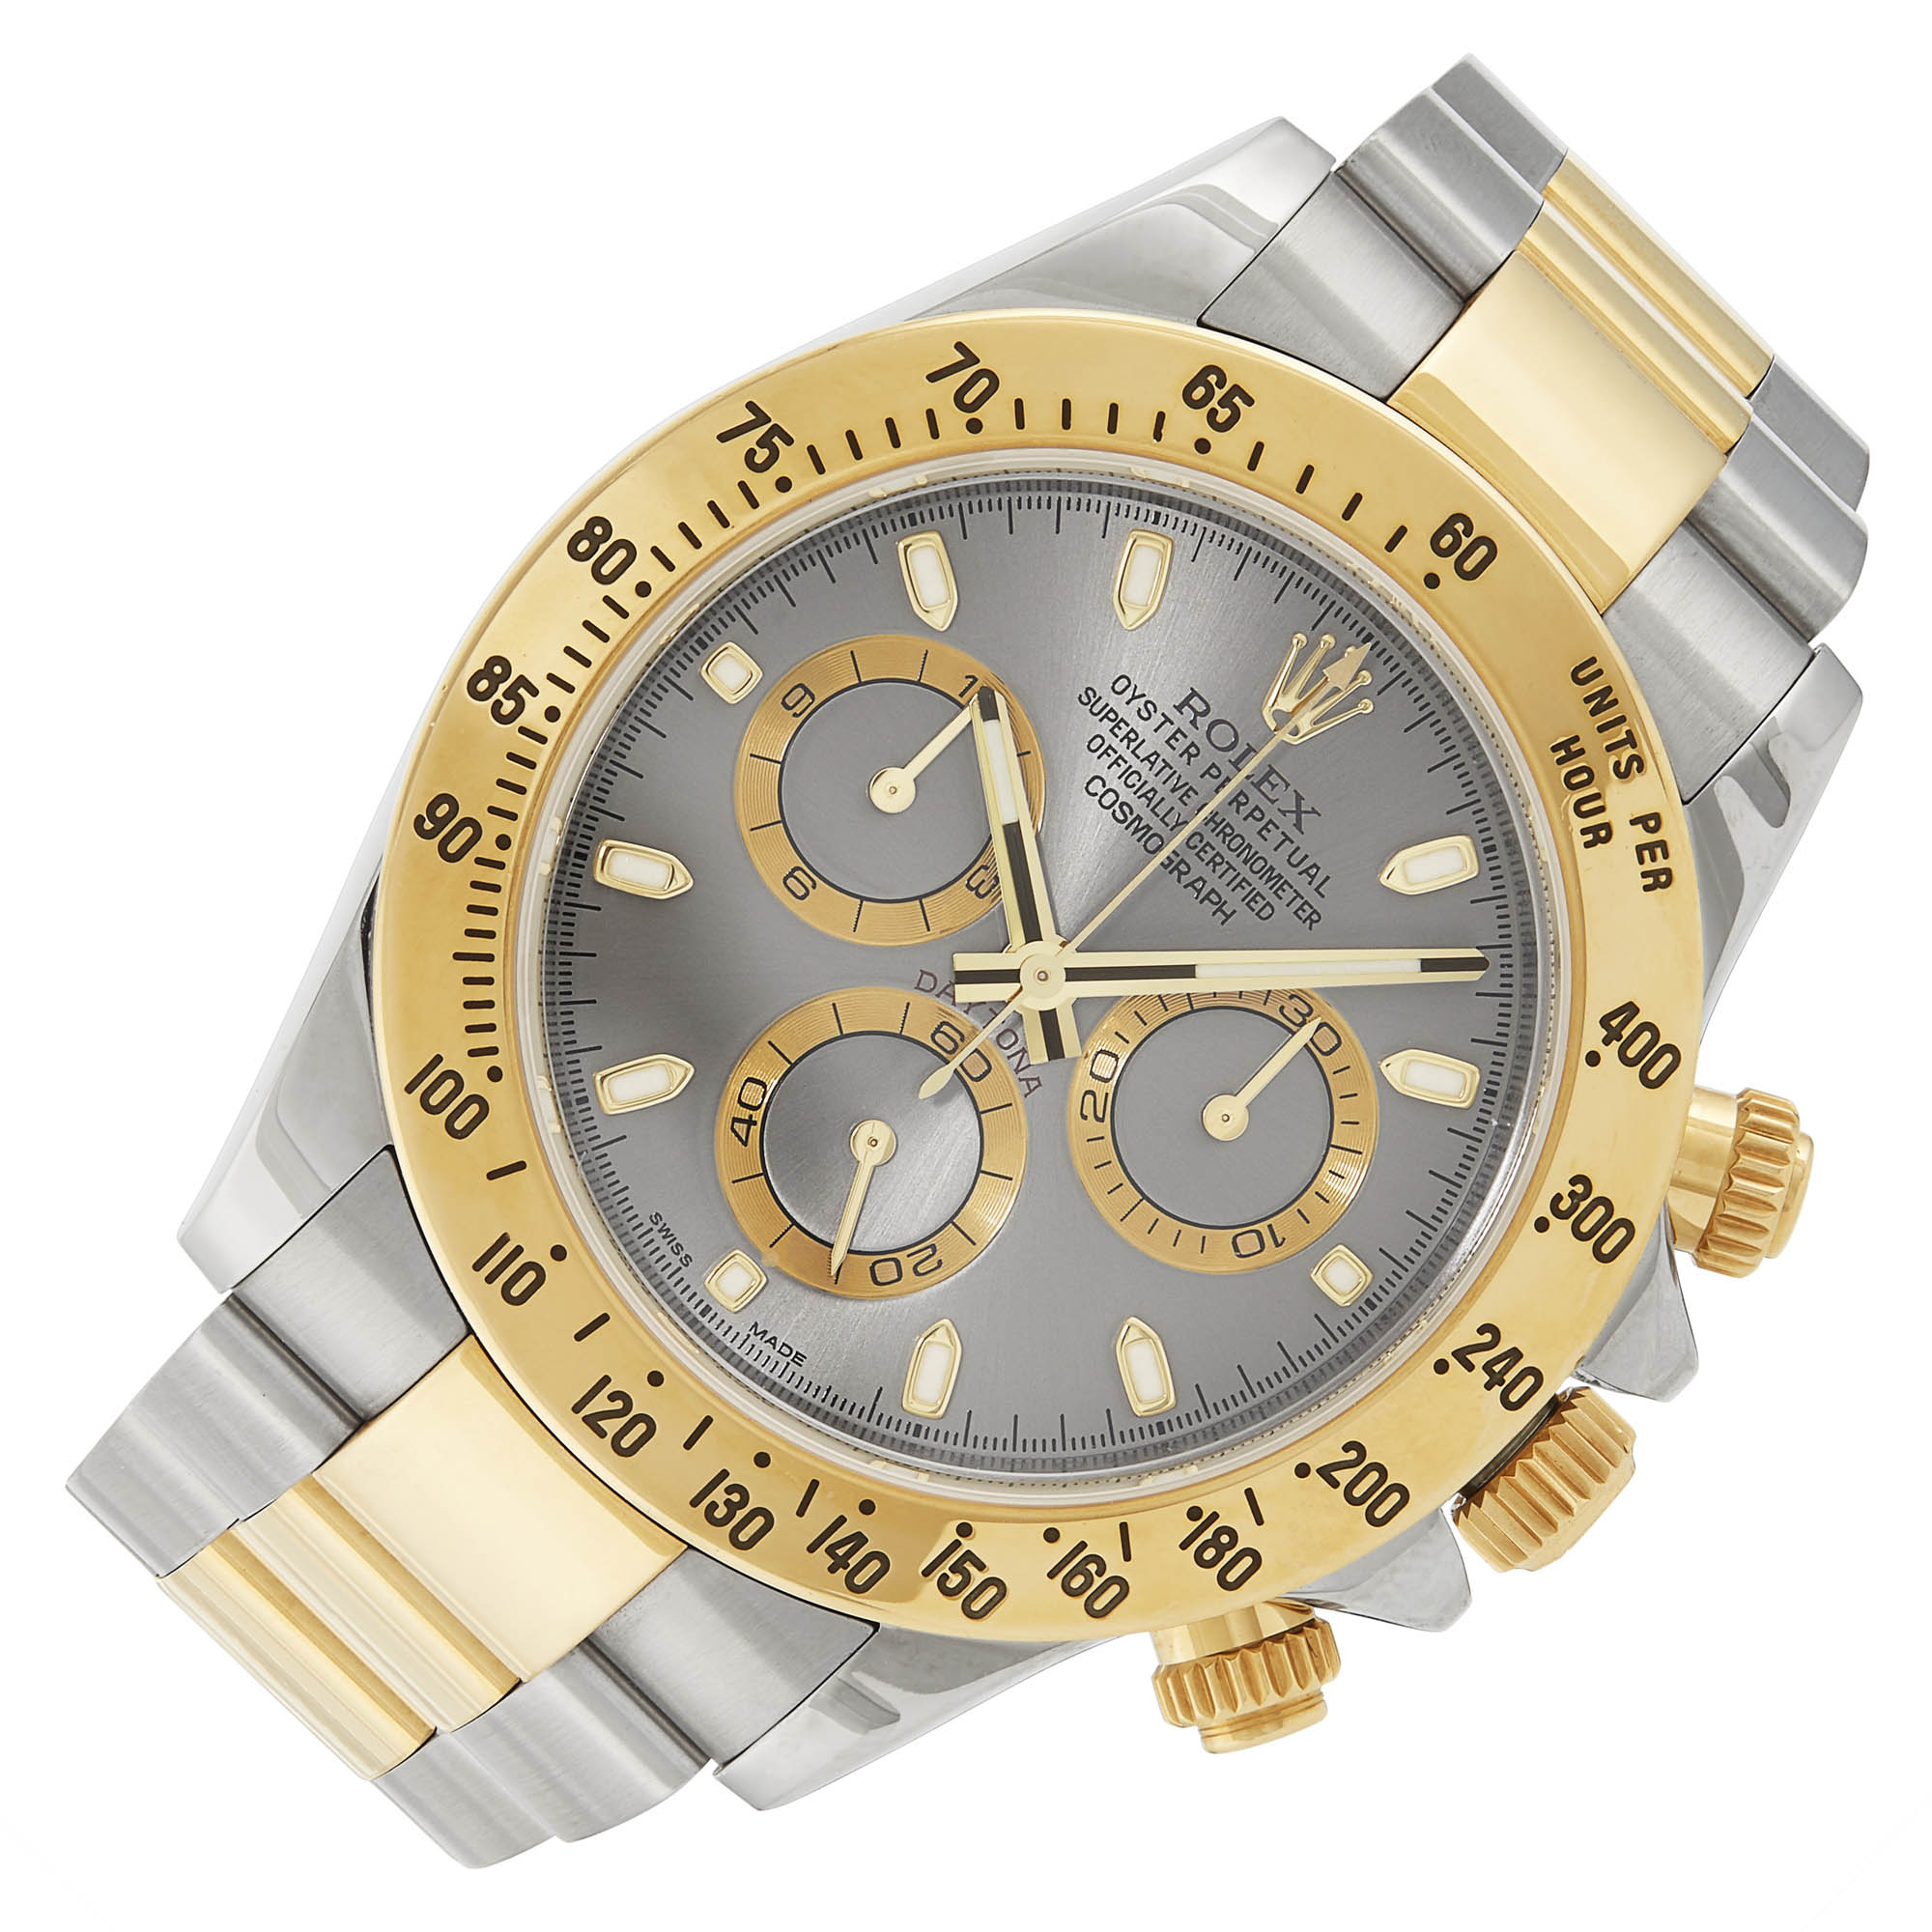 Lot image - Gold and Stainless Steel Rolex Daytona Wristwatch